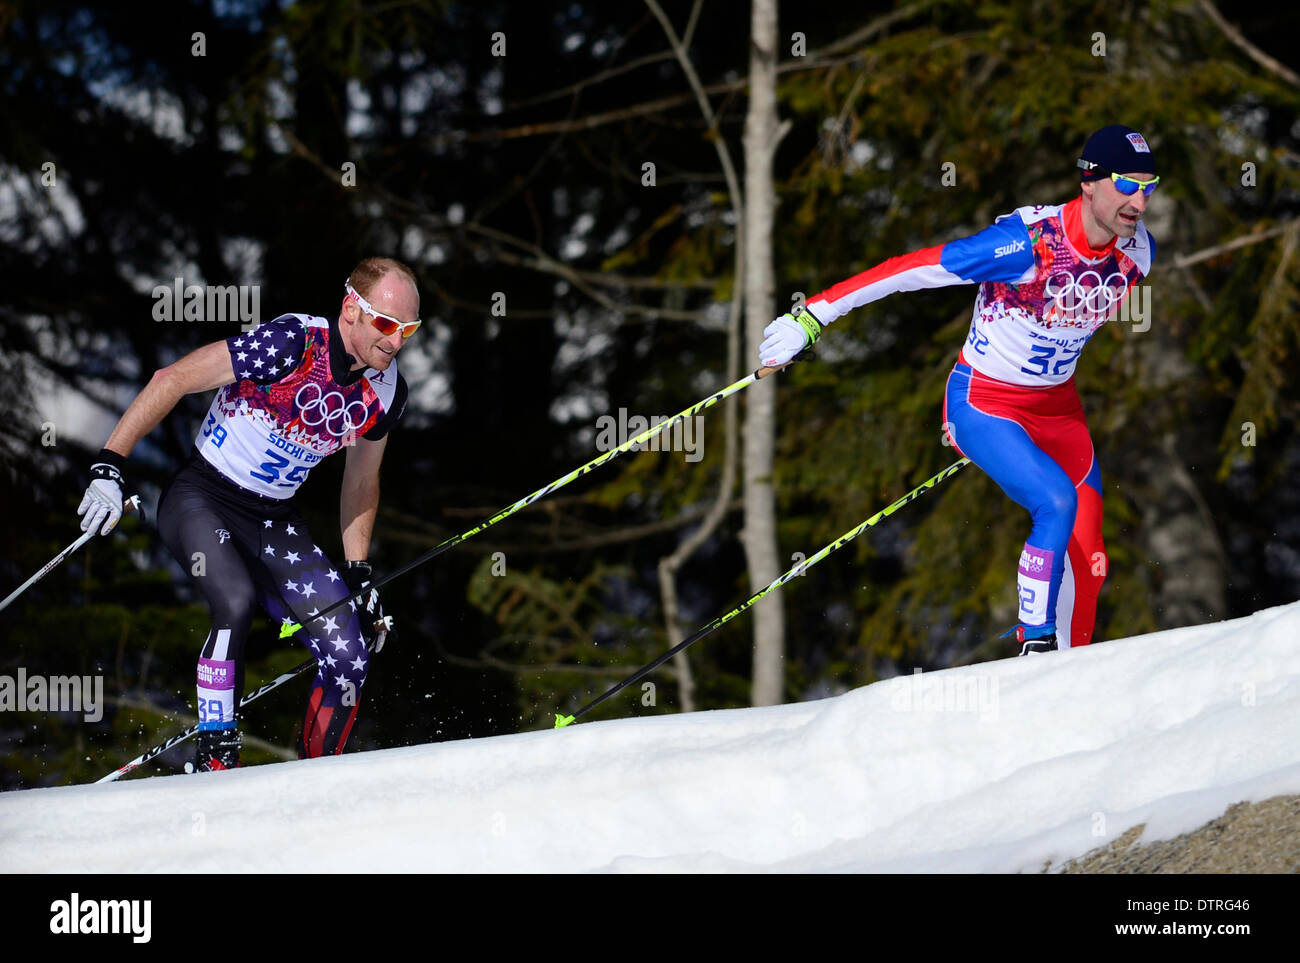 Sochi, Russia. 23rd Feb, 2014. Jiri Magal (CZE) (right) and Toni Livers (SWI) compete during the men's 50 KM cross country at the 2014 Winter Olympics, Sunday, February 23, 2014, in Krasnaya Polyana, Russia. Credit: Roman Vondrous/CTK Photo/Alamy Live News - Stock Image